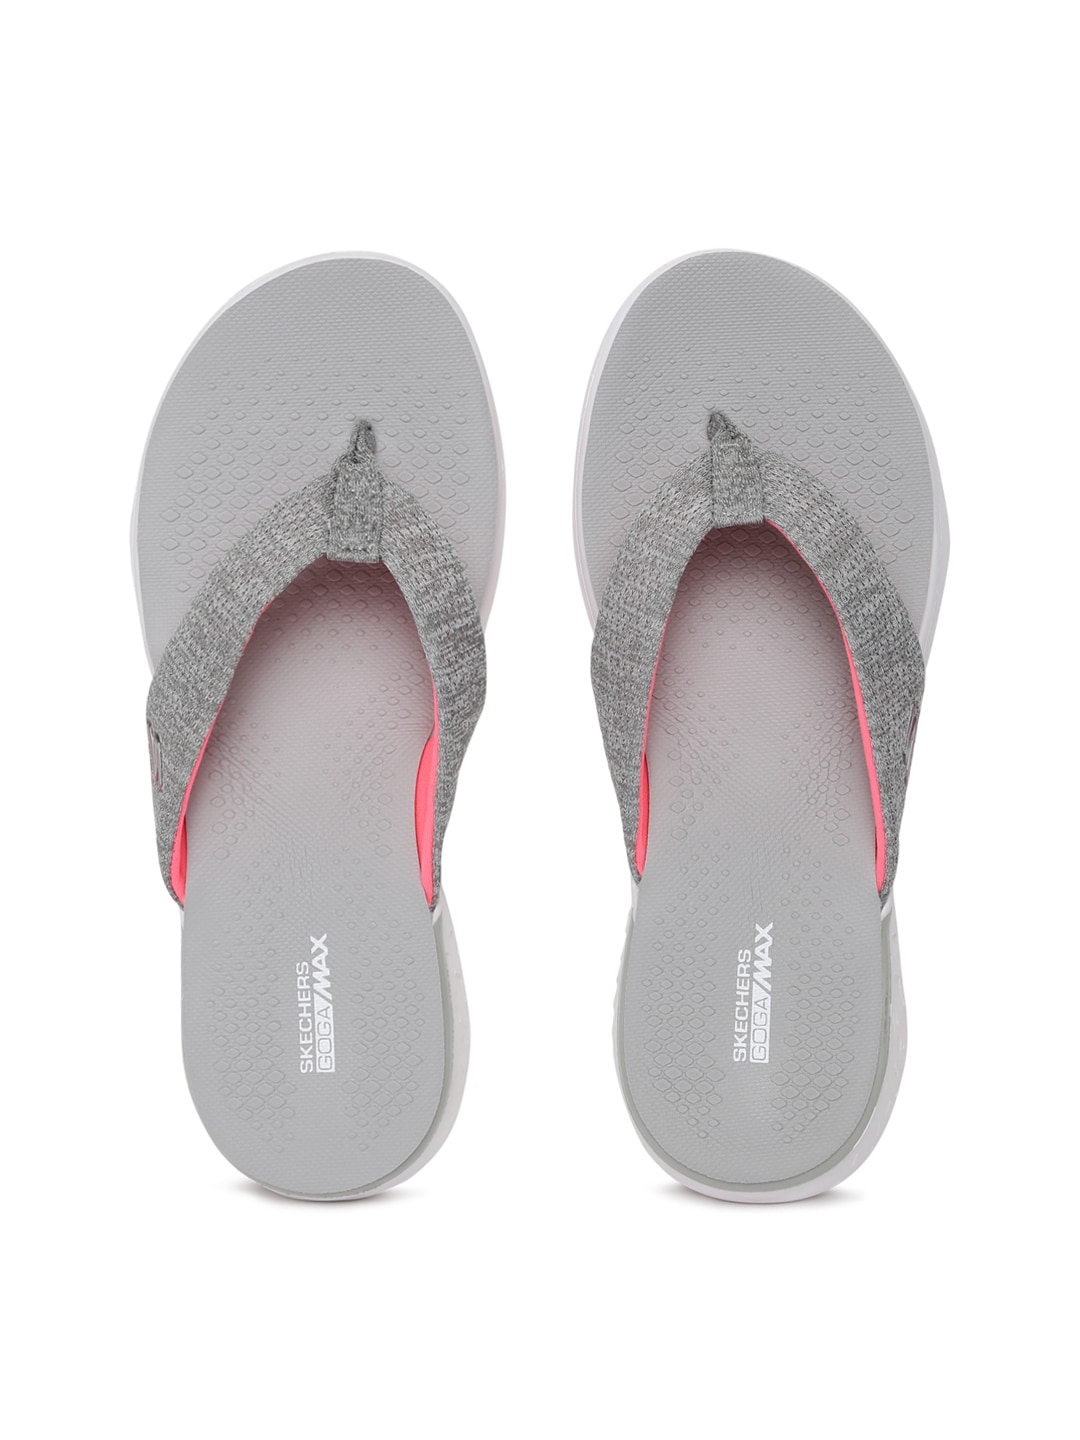 c0e5fed4681f Skechers Vinyasa Grey Slippers for women - Get stylish shoes for ...